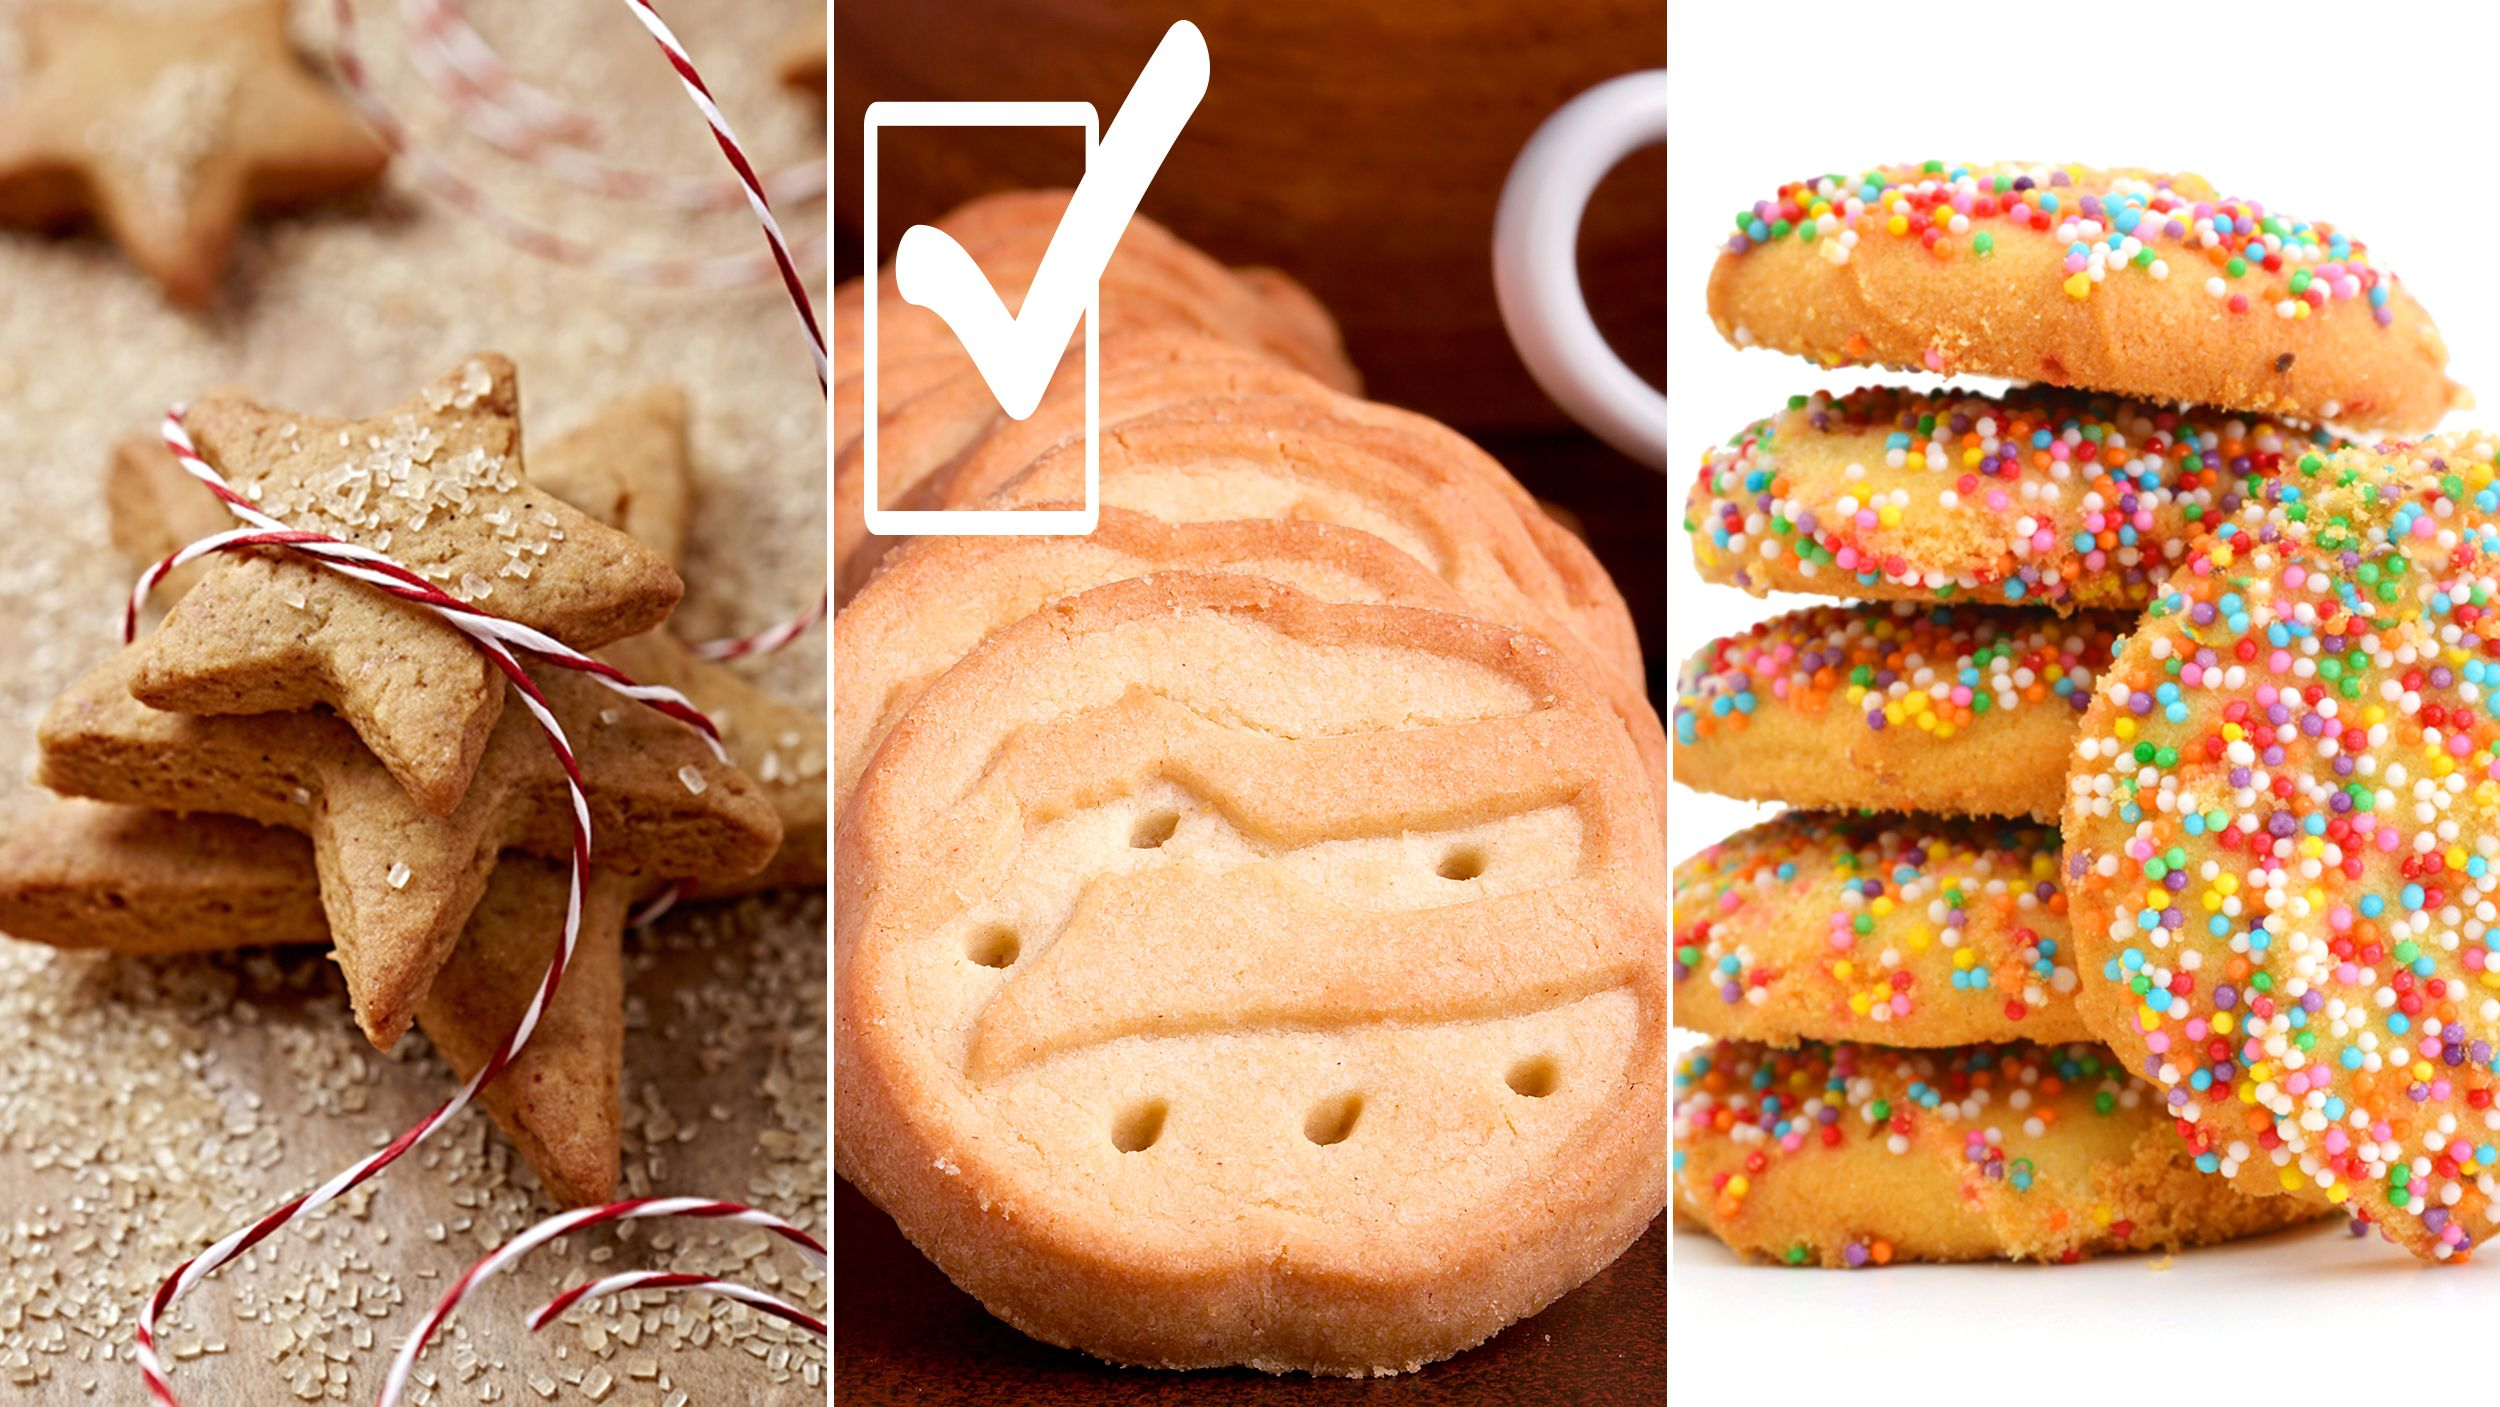 7 heathier food choices to make at holiday parties